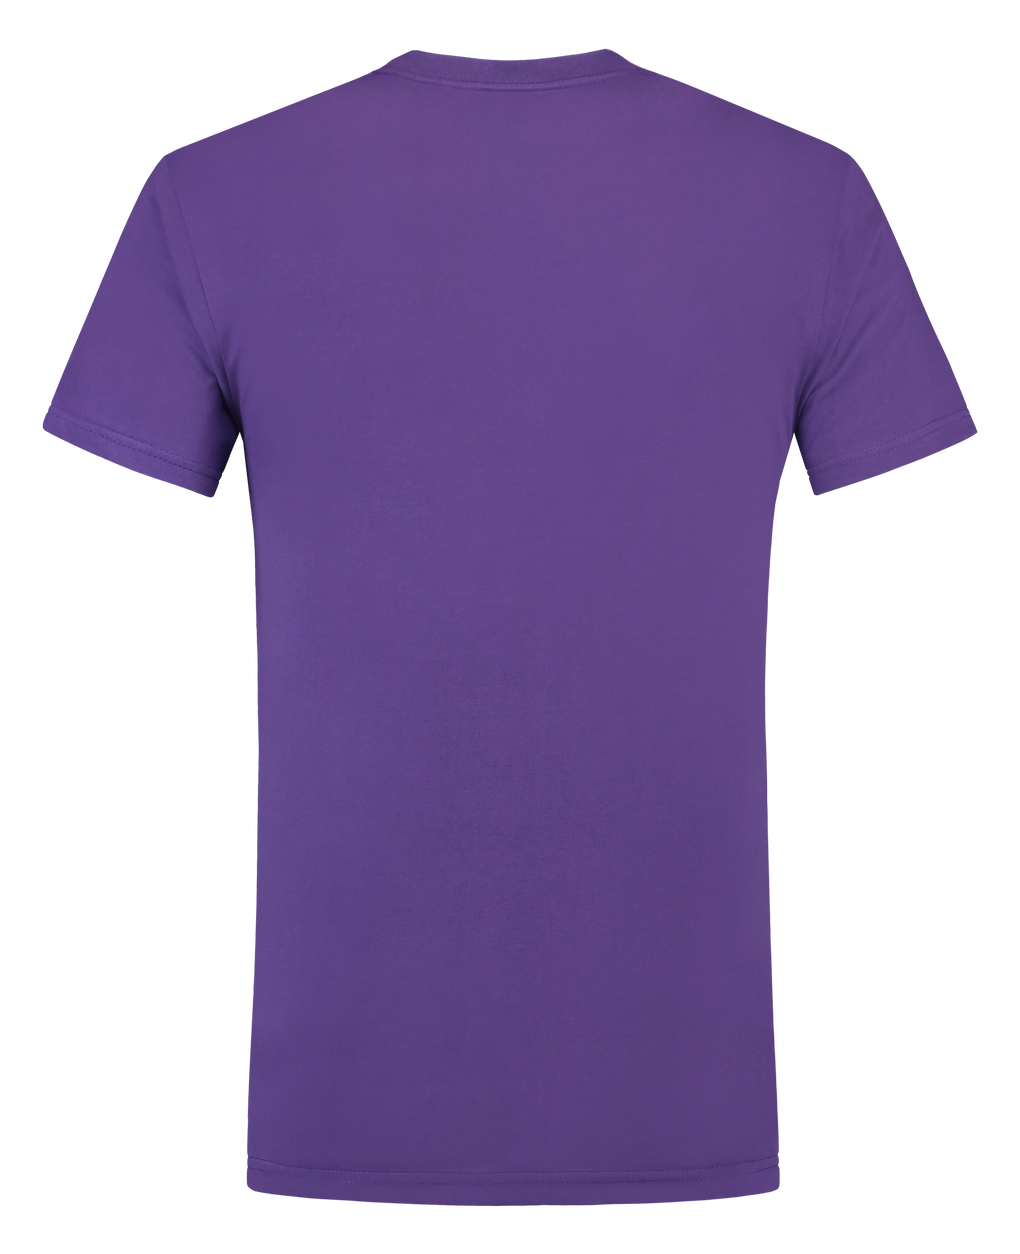 Tricorp T-Shirt 145 Gram Purple